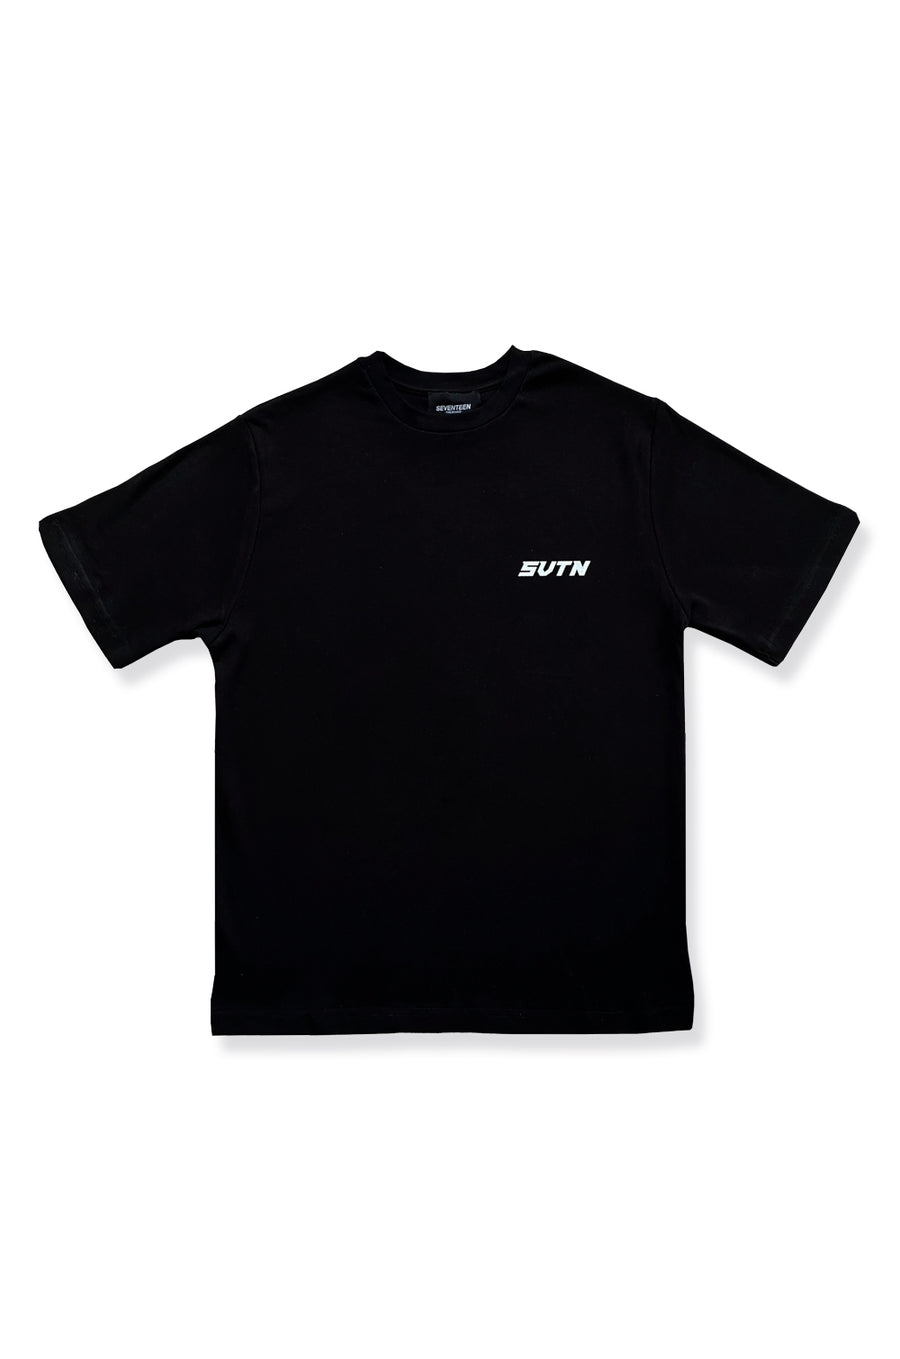 SVTN All Power To The People Black T-Shirt